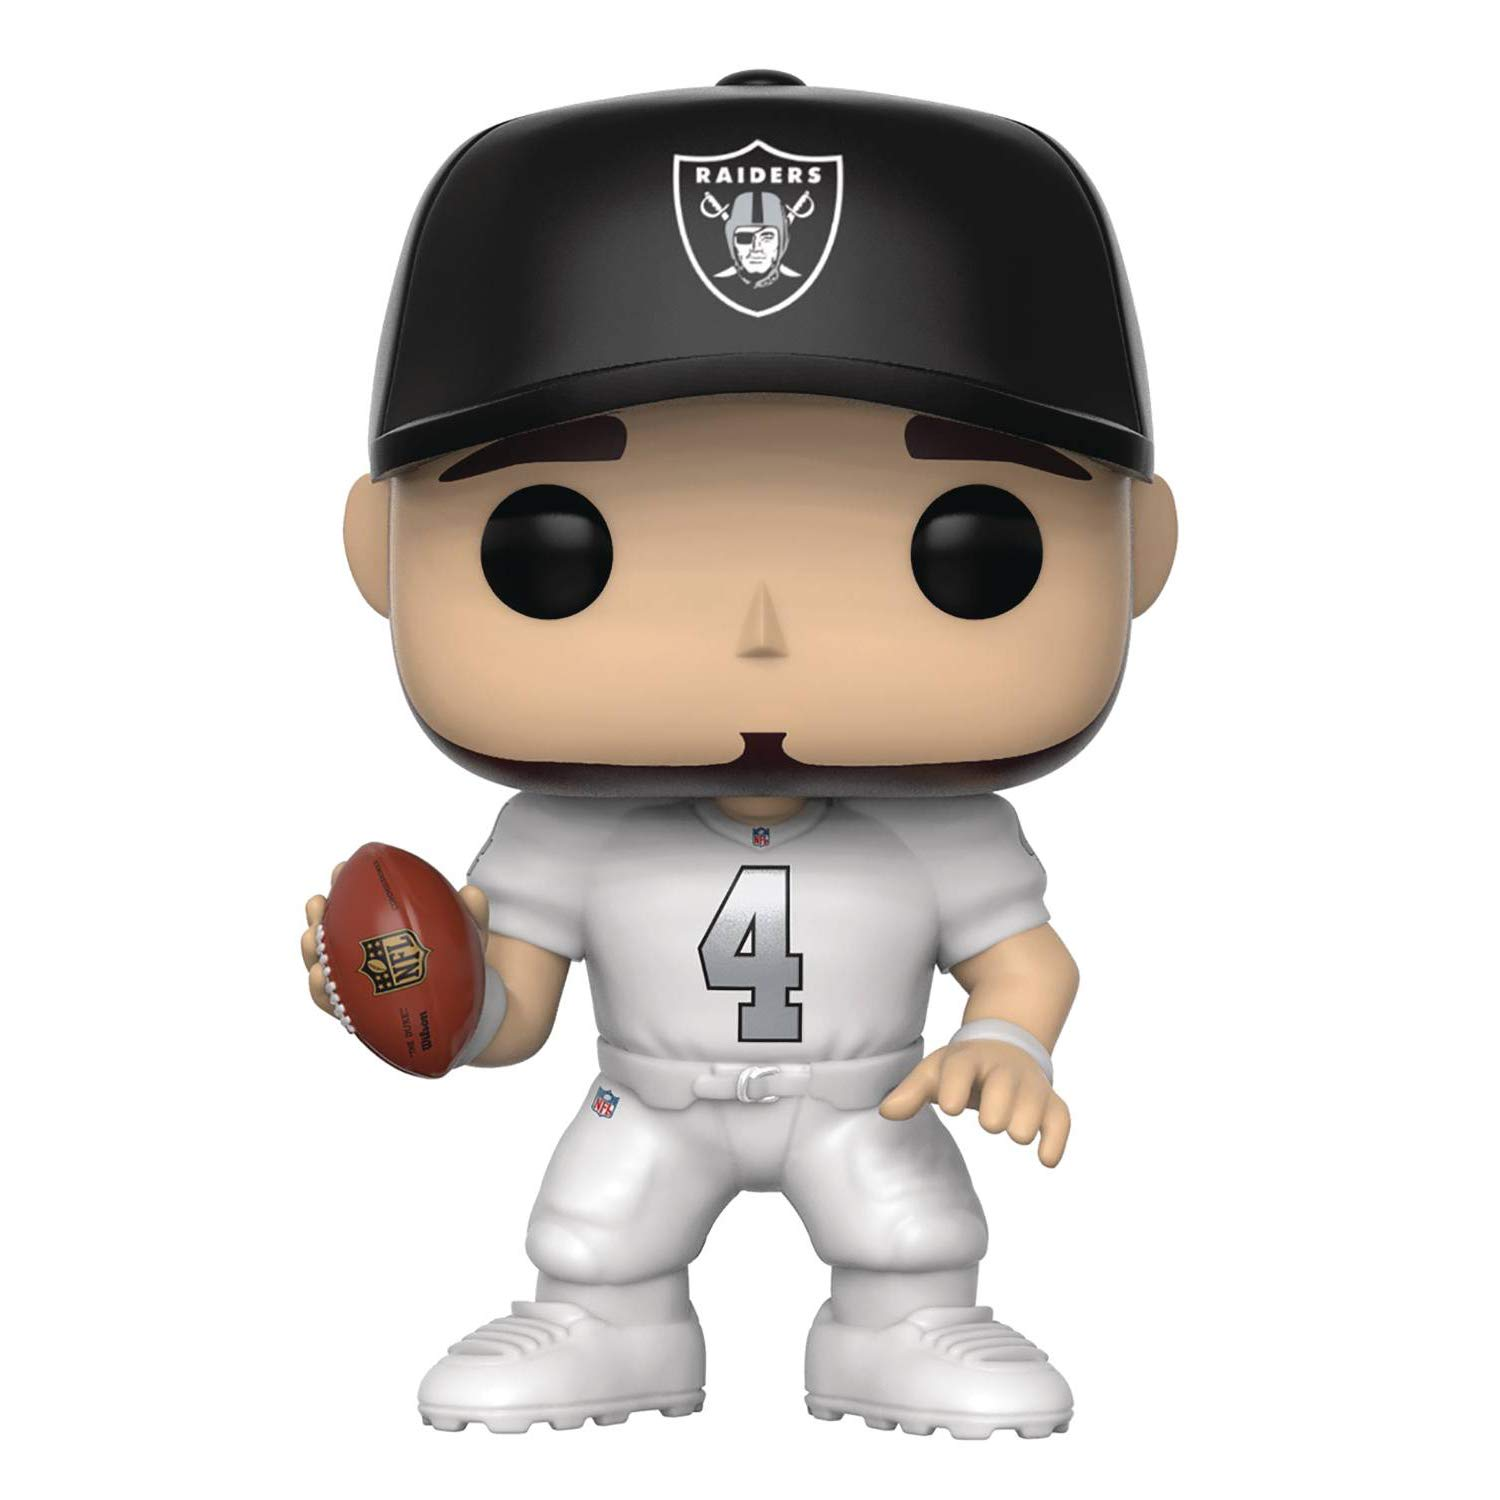 Funko Derek Carr  Oakland Raiders Rush   NFL x POP! Football Vinyl Figure    1 POP! Compatible PET Plastic Graphical Protector Bundle   047   31728 - B  c7f6af093